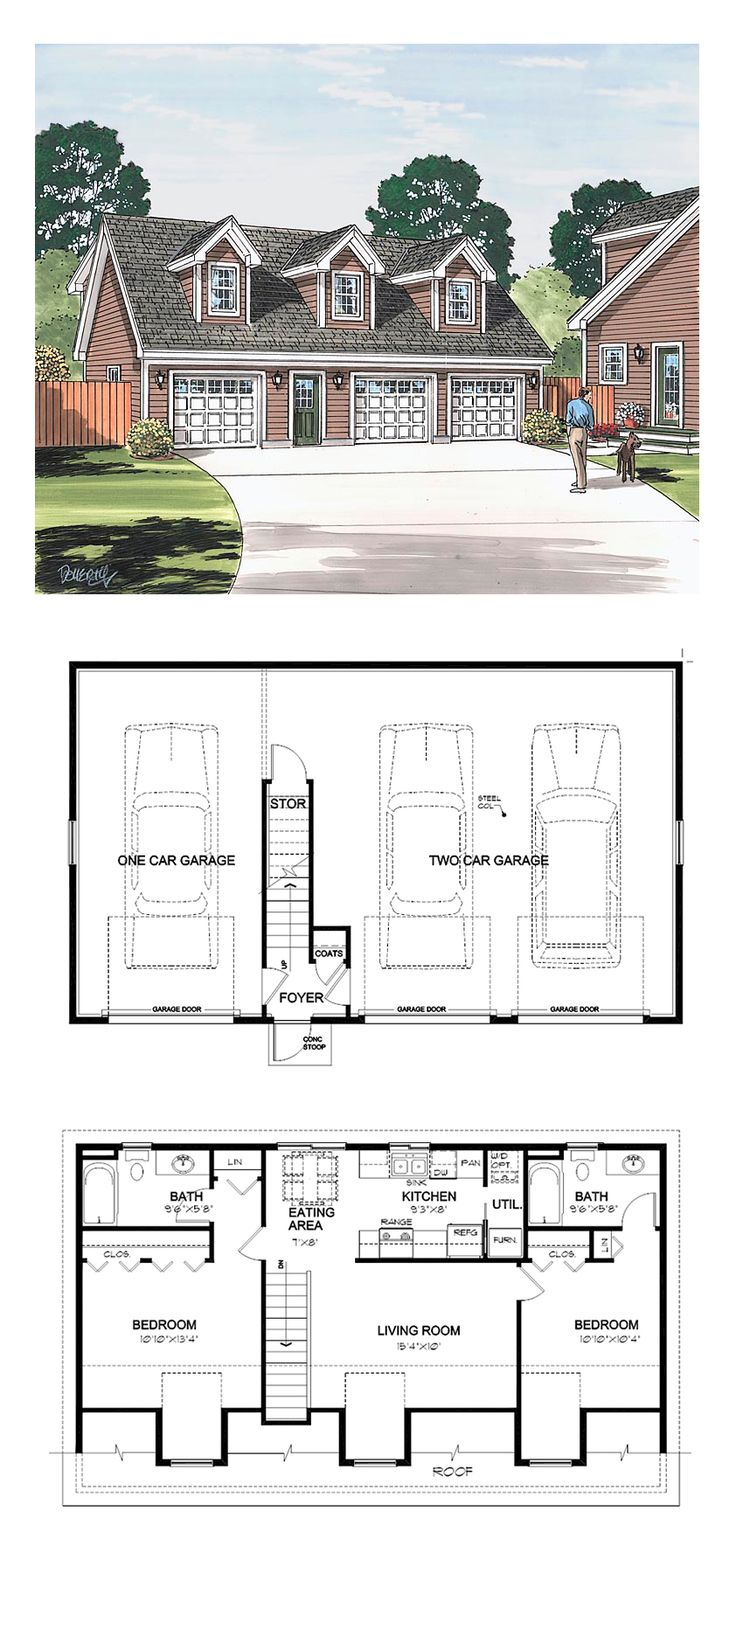 Make garage bay an office gym craft room and laundry room garage apartment plan 30032